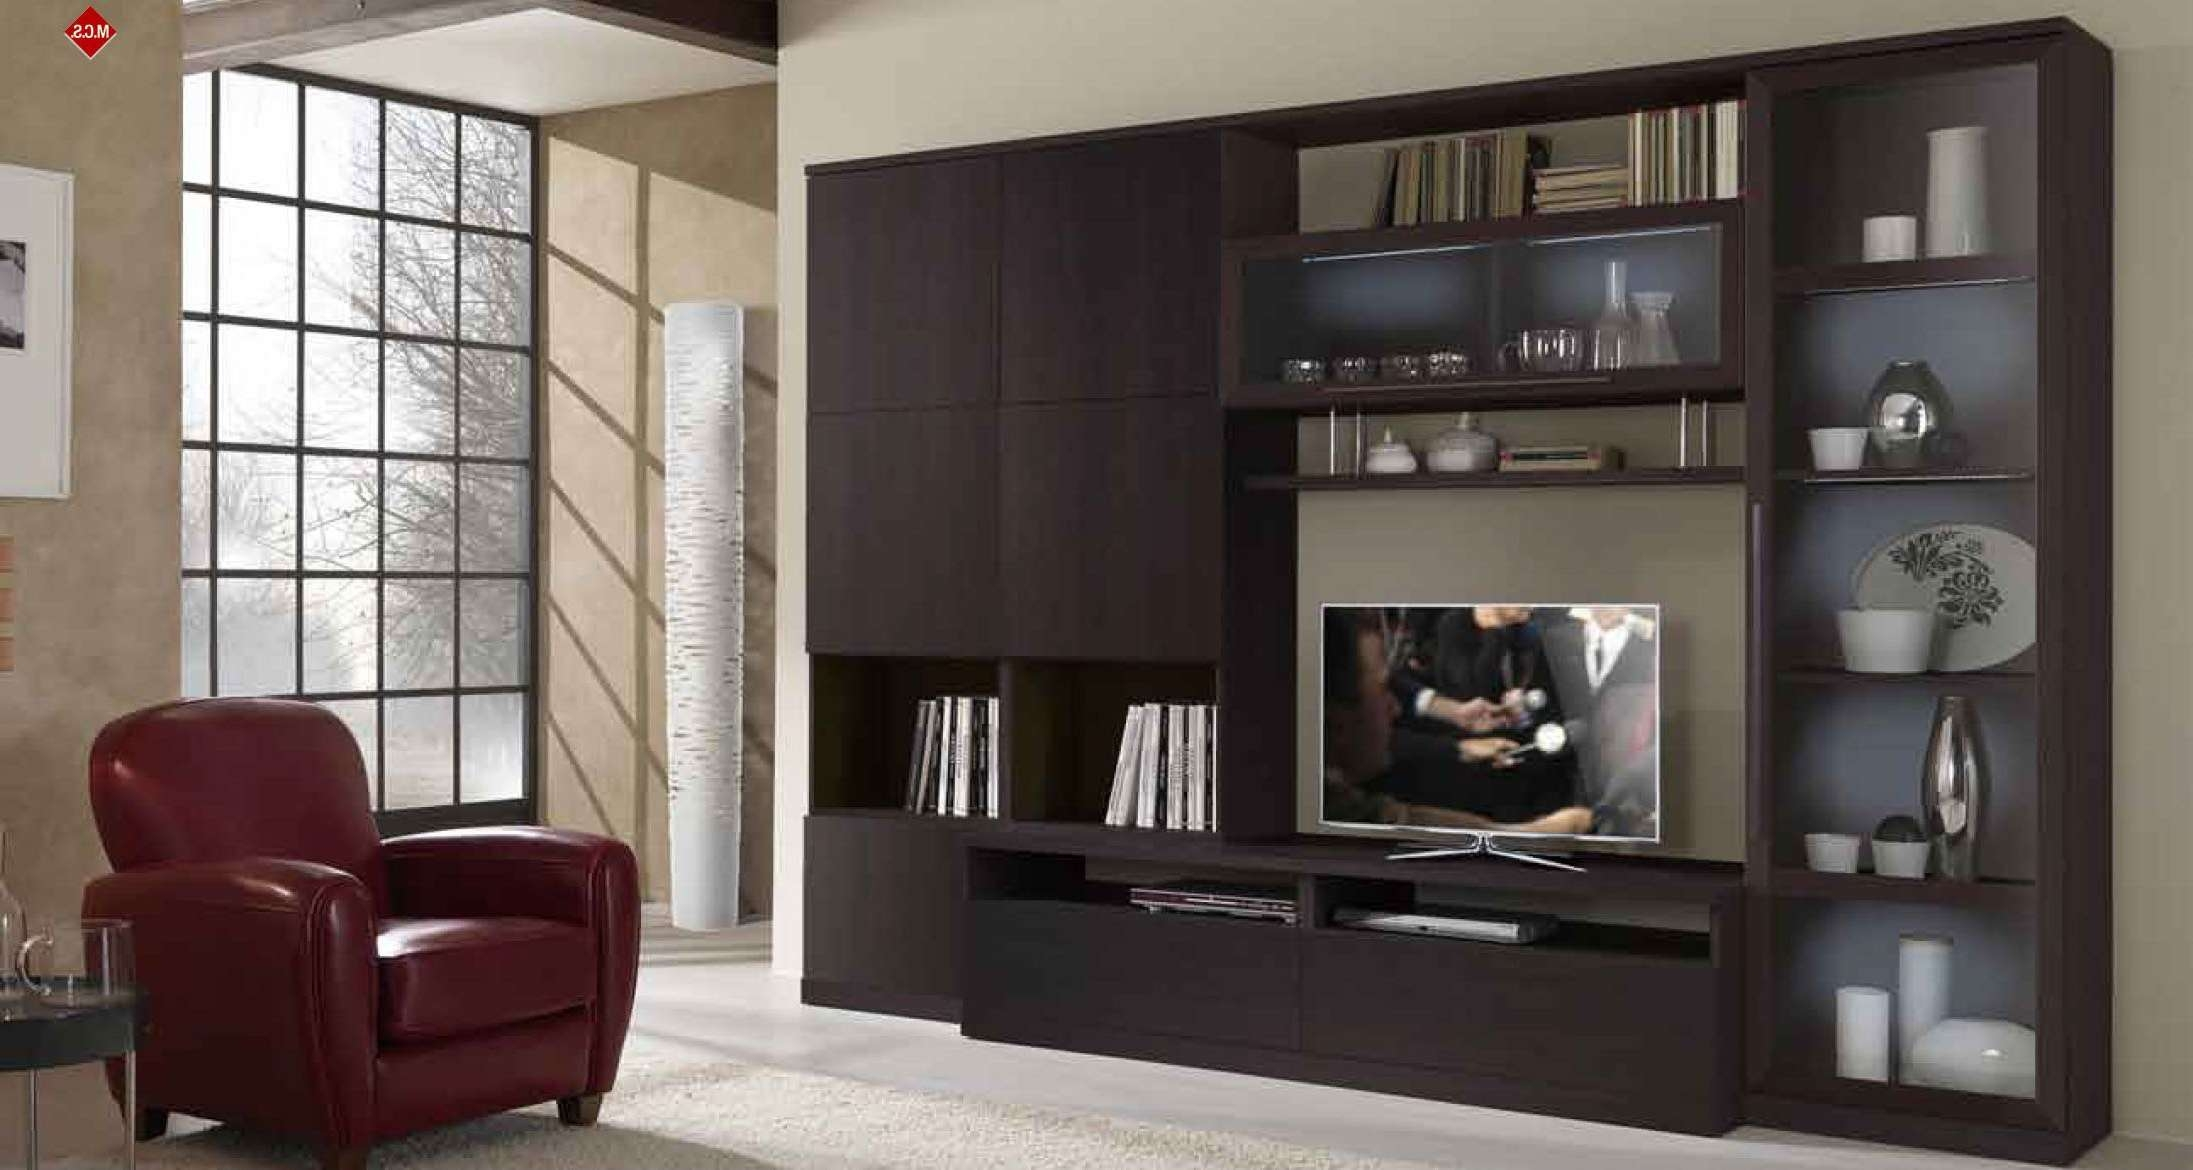 Living Room Tv Cabinet Design With Ideas Image | Mariapngt Inside Living Room Tv Cabinets (View 12 of 20)